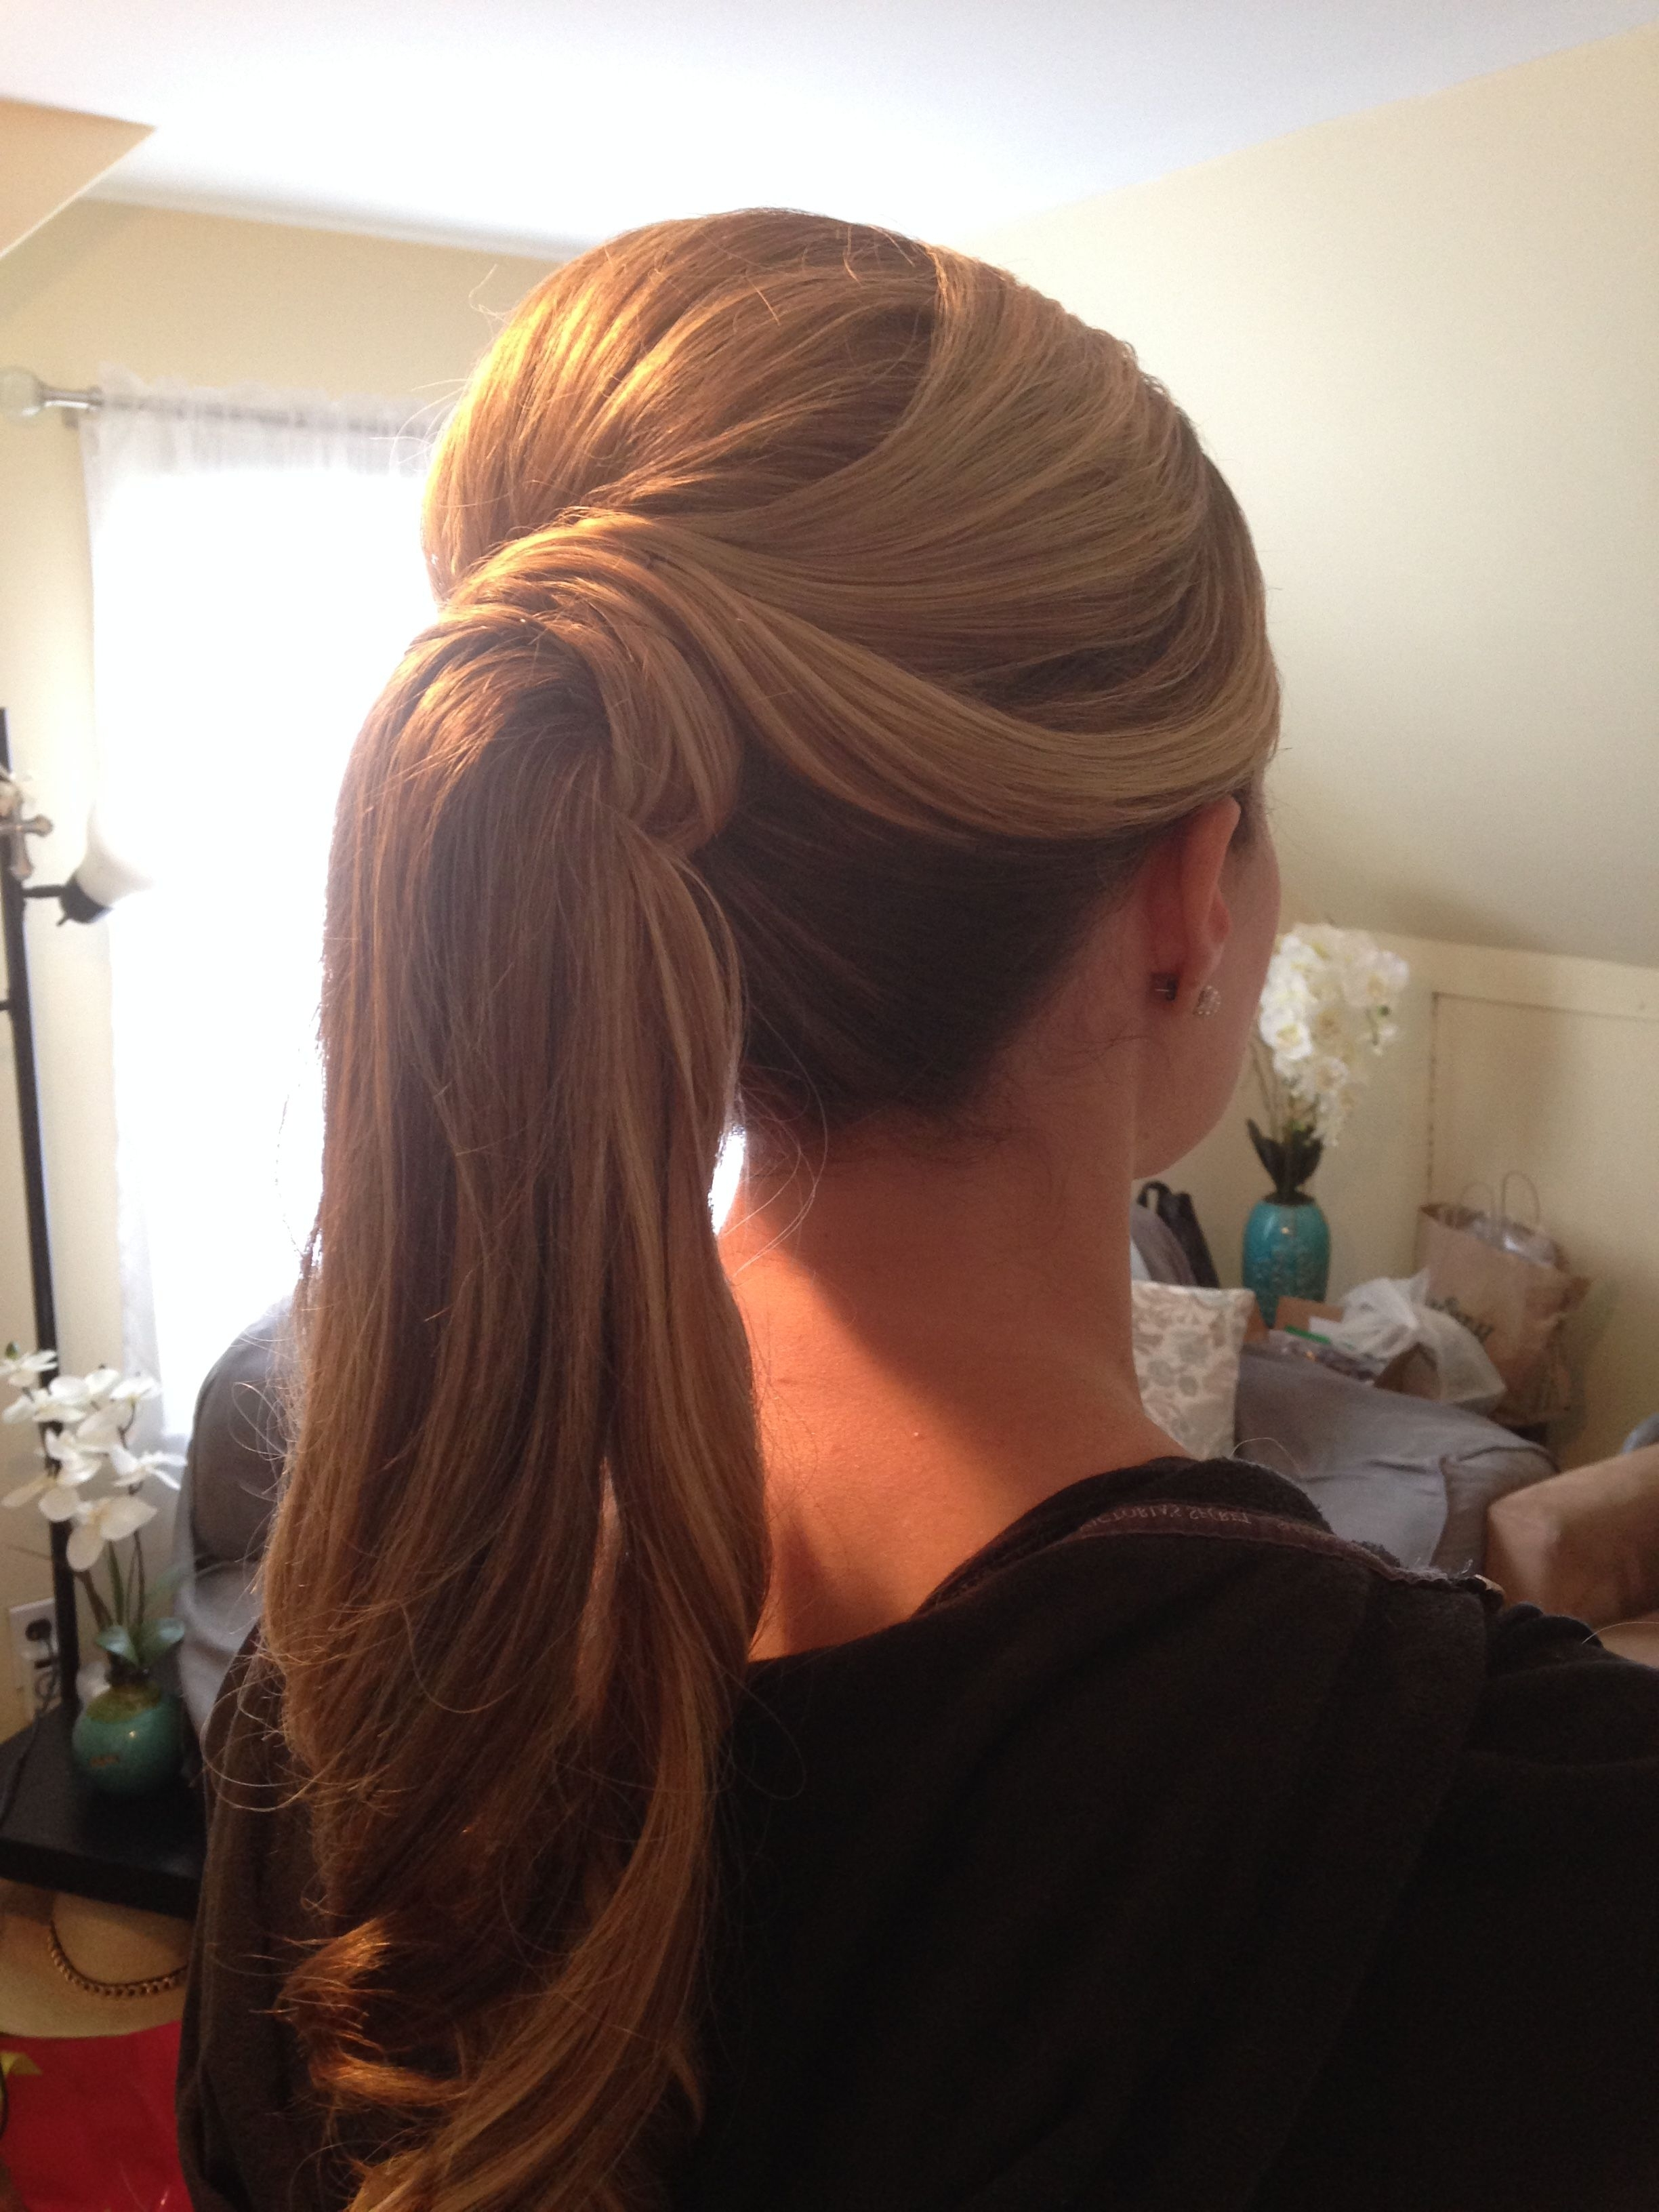 Ponytail Intended For Most Popular Classic Bridesmaid Ponytail Hairstyles (View 14 of 20)